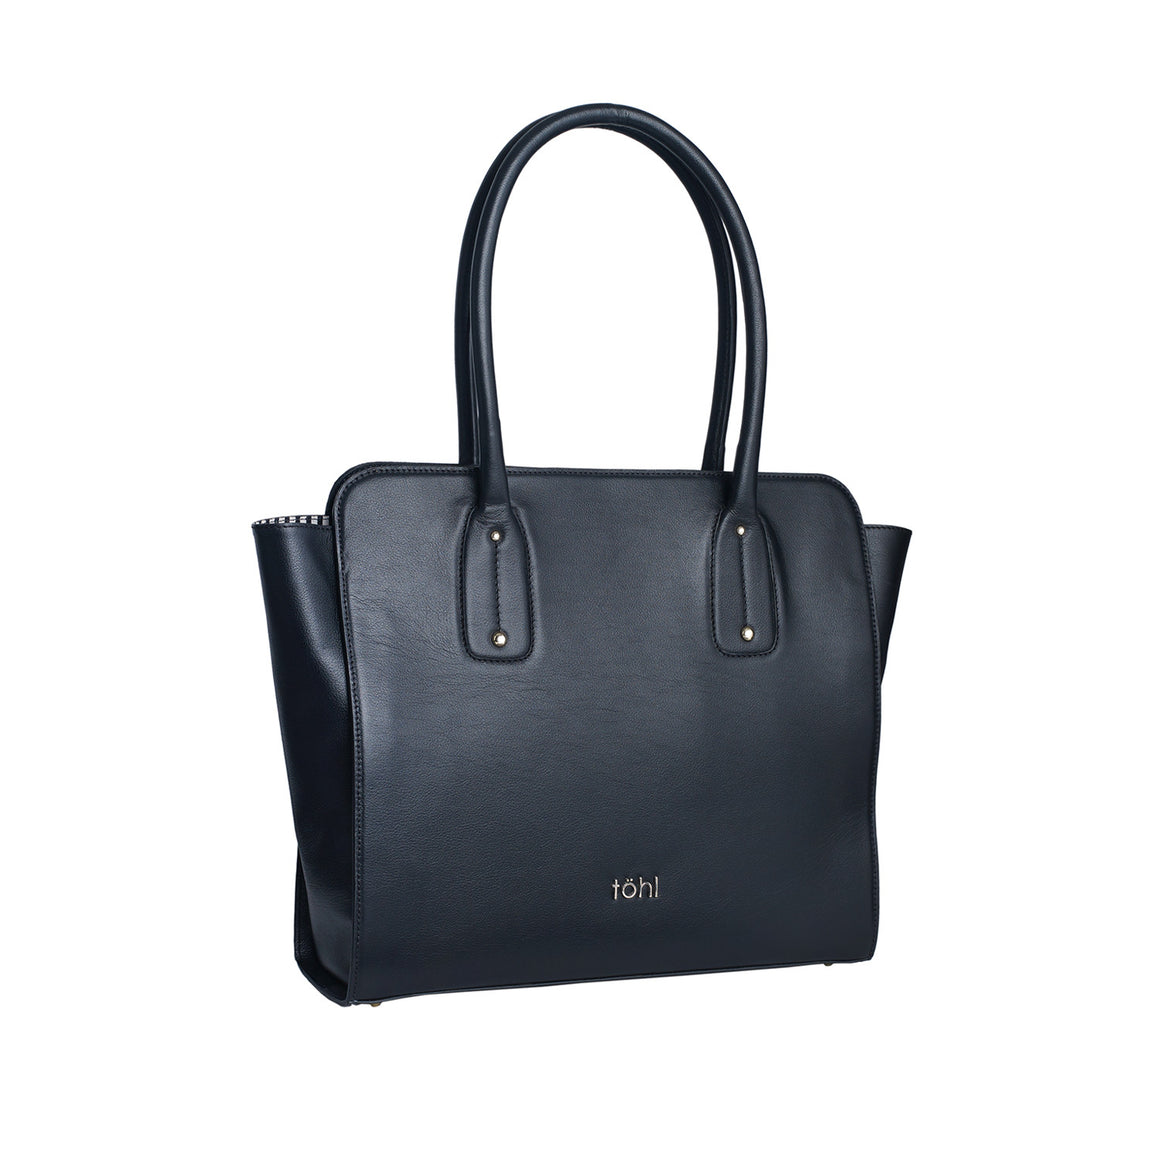 SB 0007- TOHL KURA WOMEN'S TOTE BAG - CHARCOAL BLACK